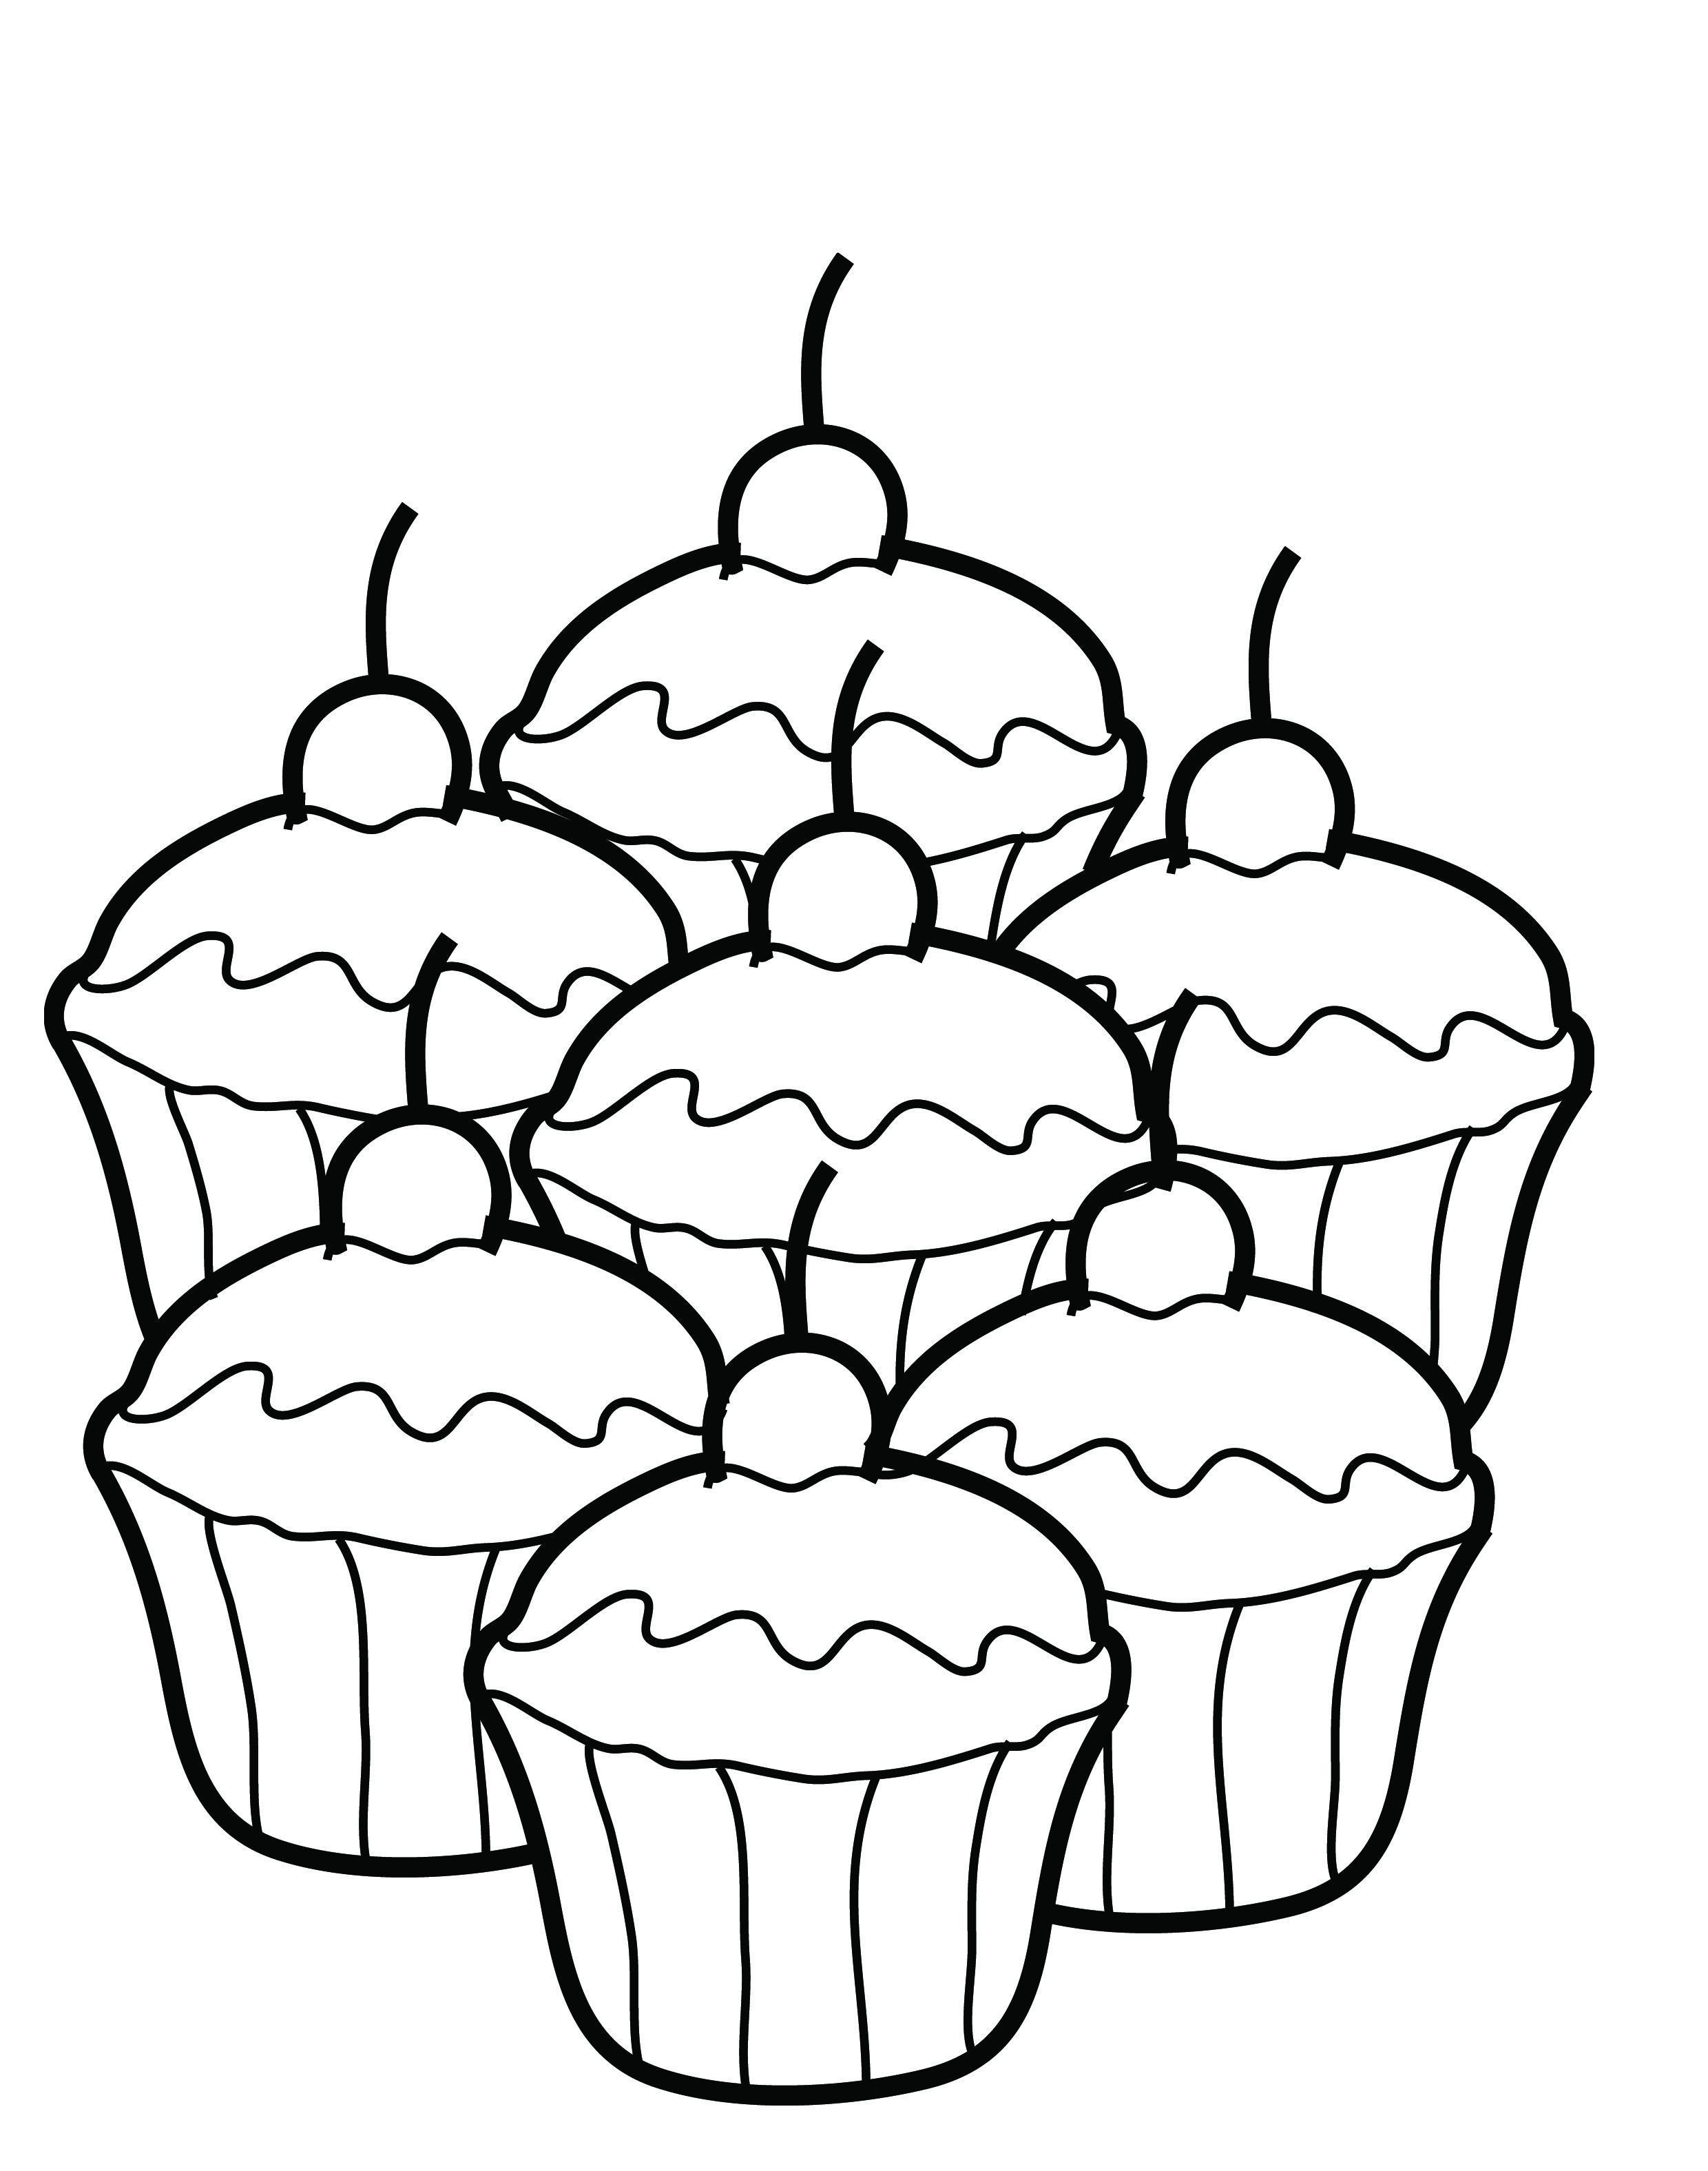 Delightful Cupcake Coloring Pages For Kids